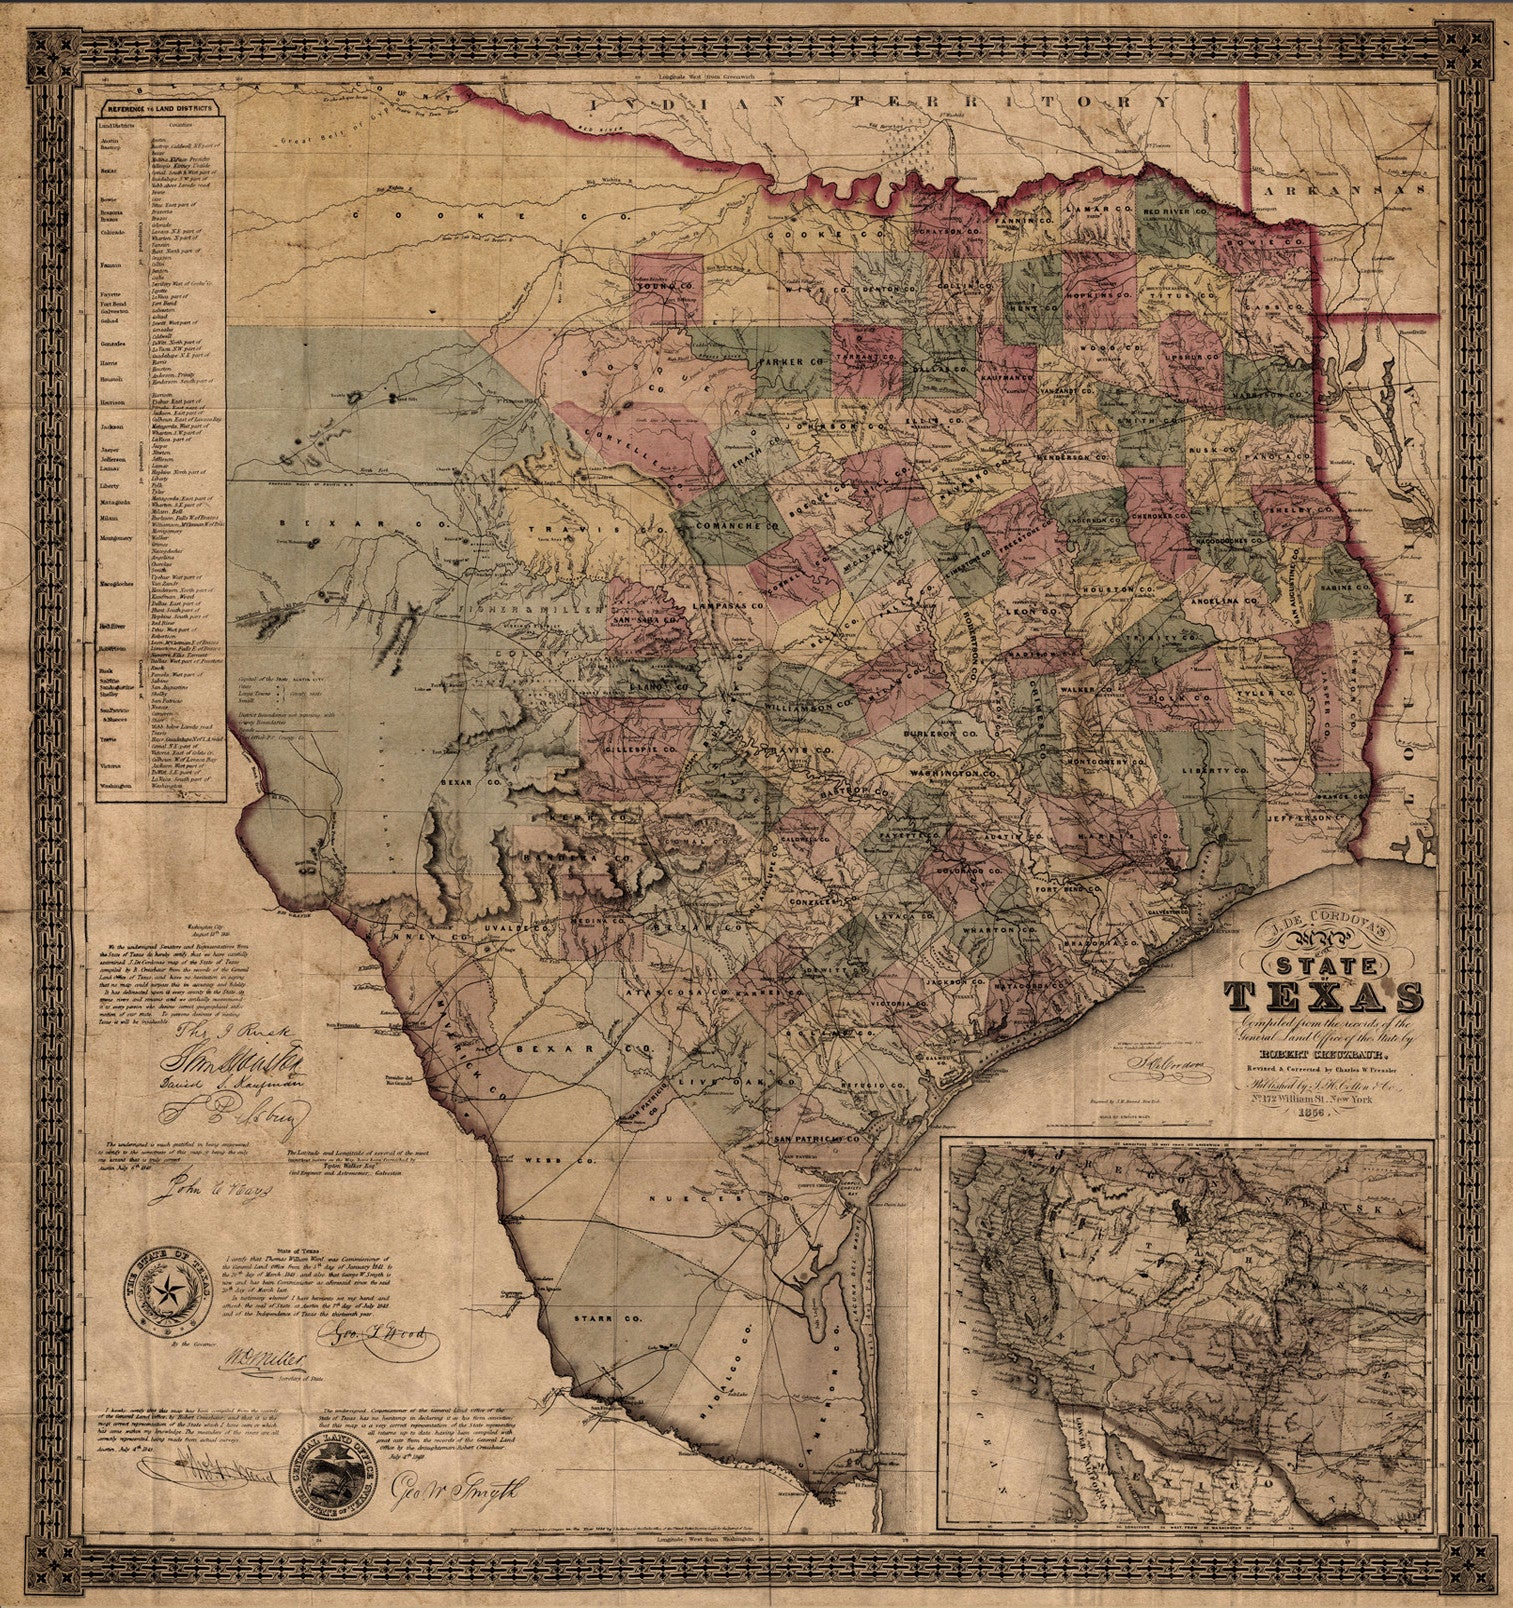 State Map of Texas 1856